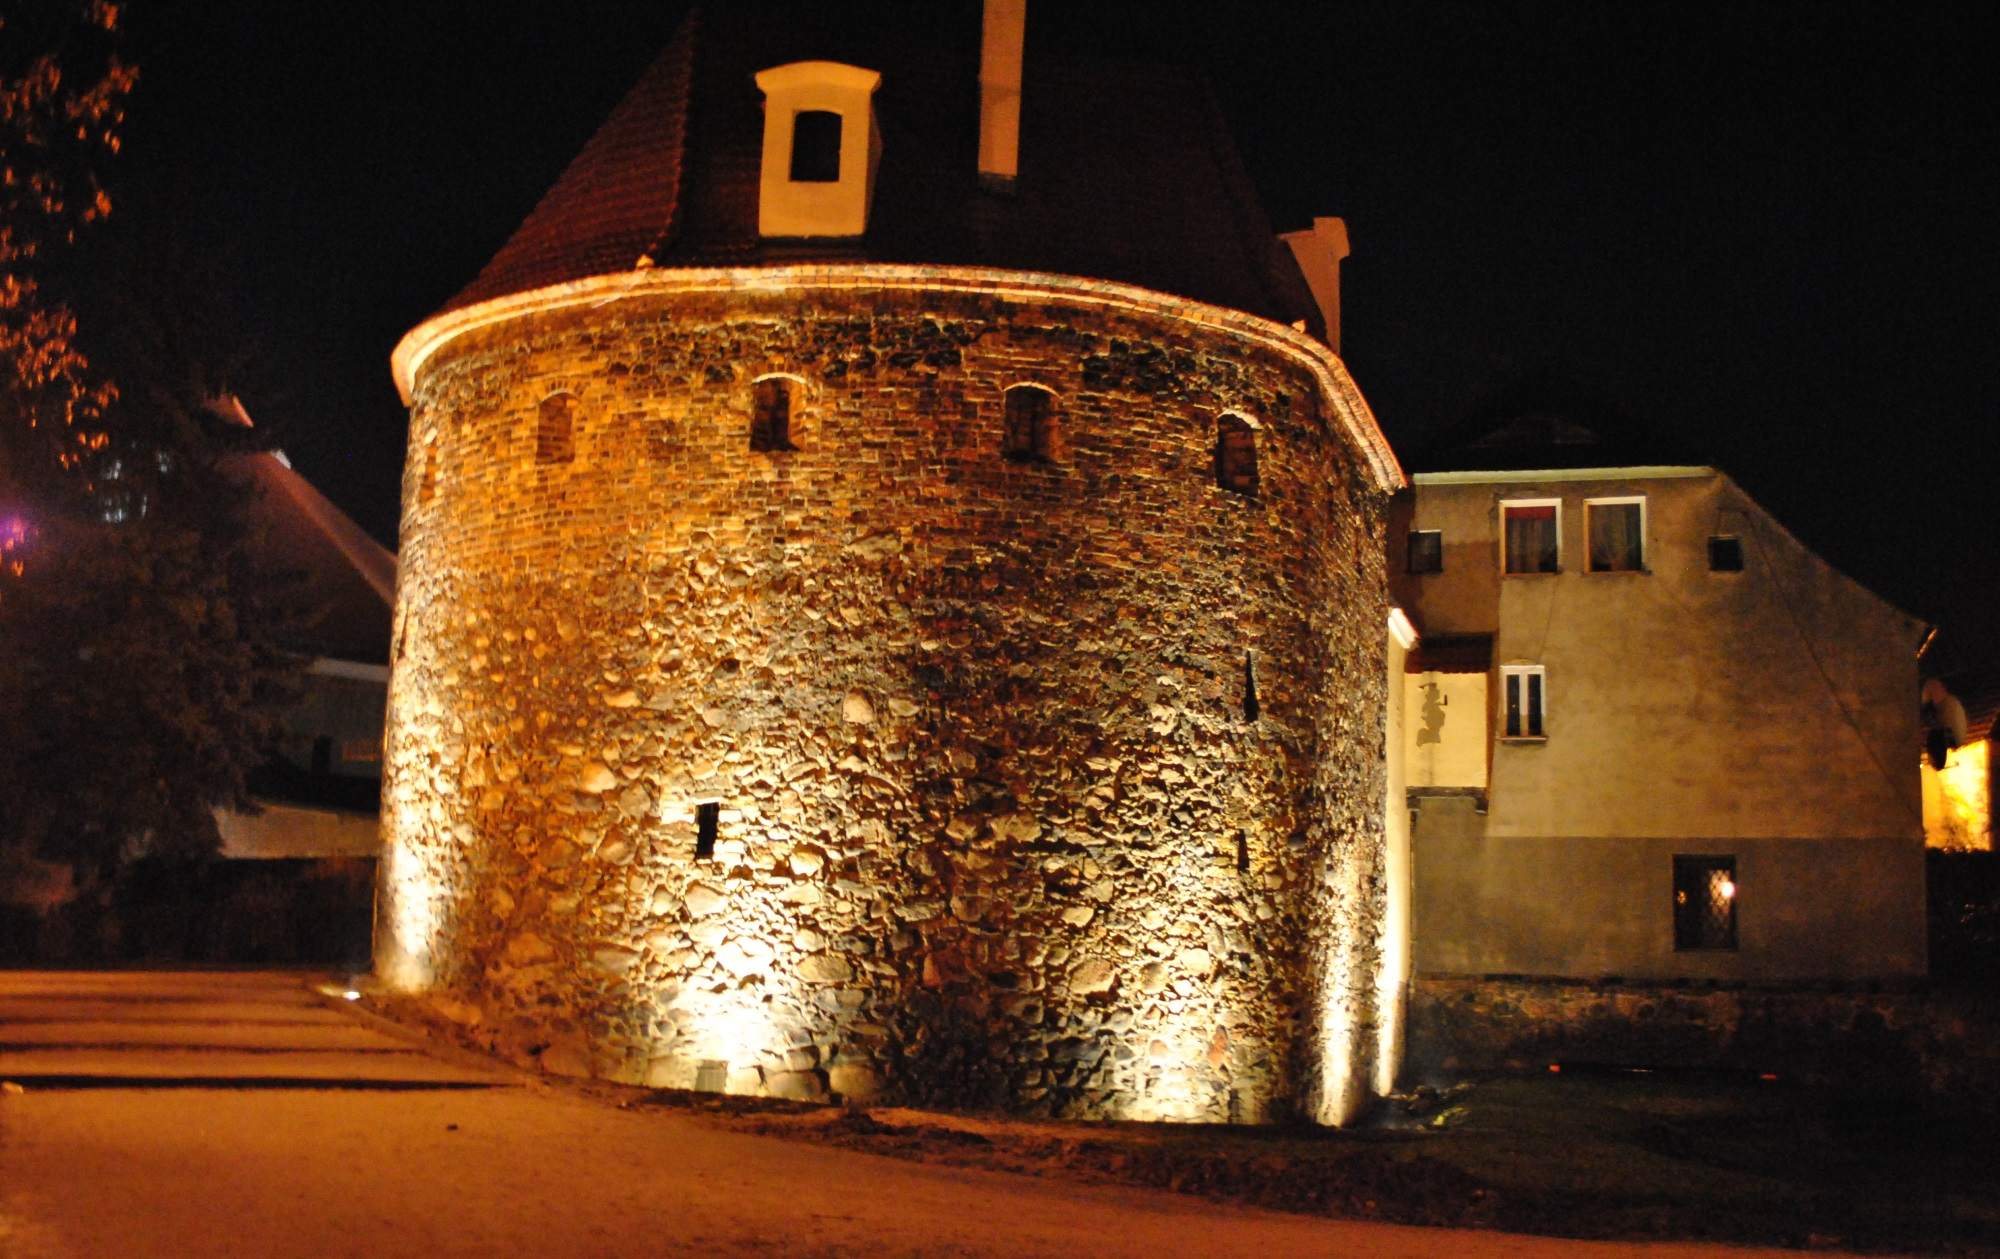 Illuminated bastion, fortification